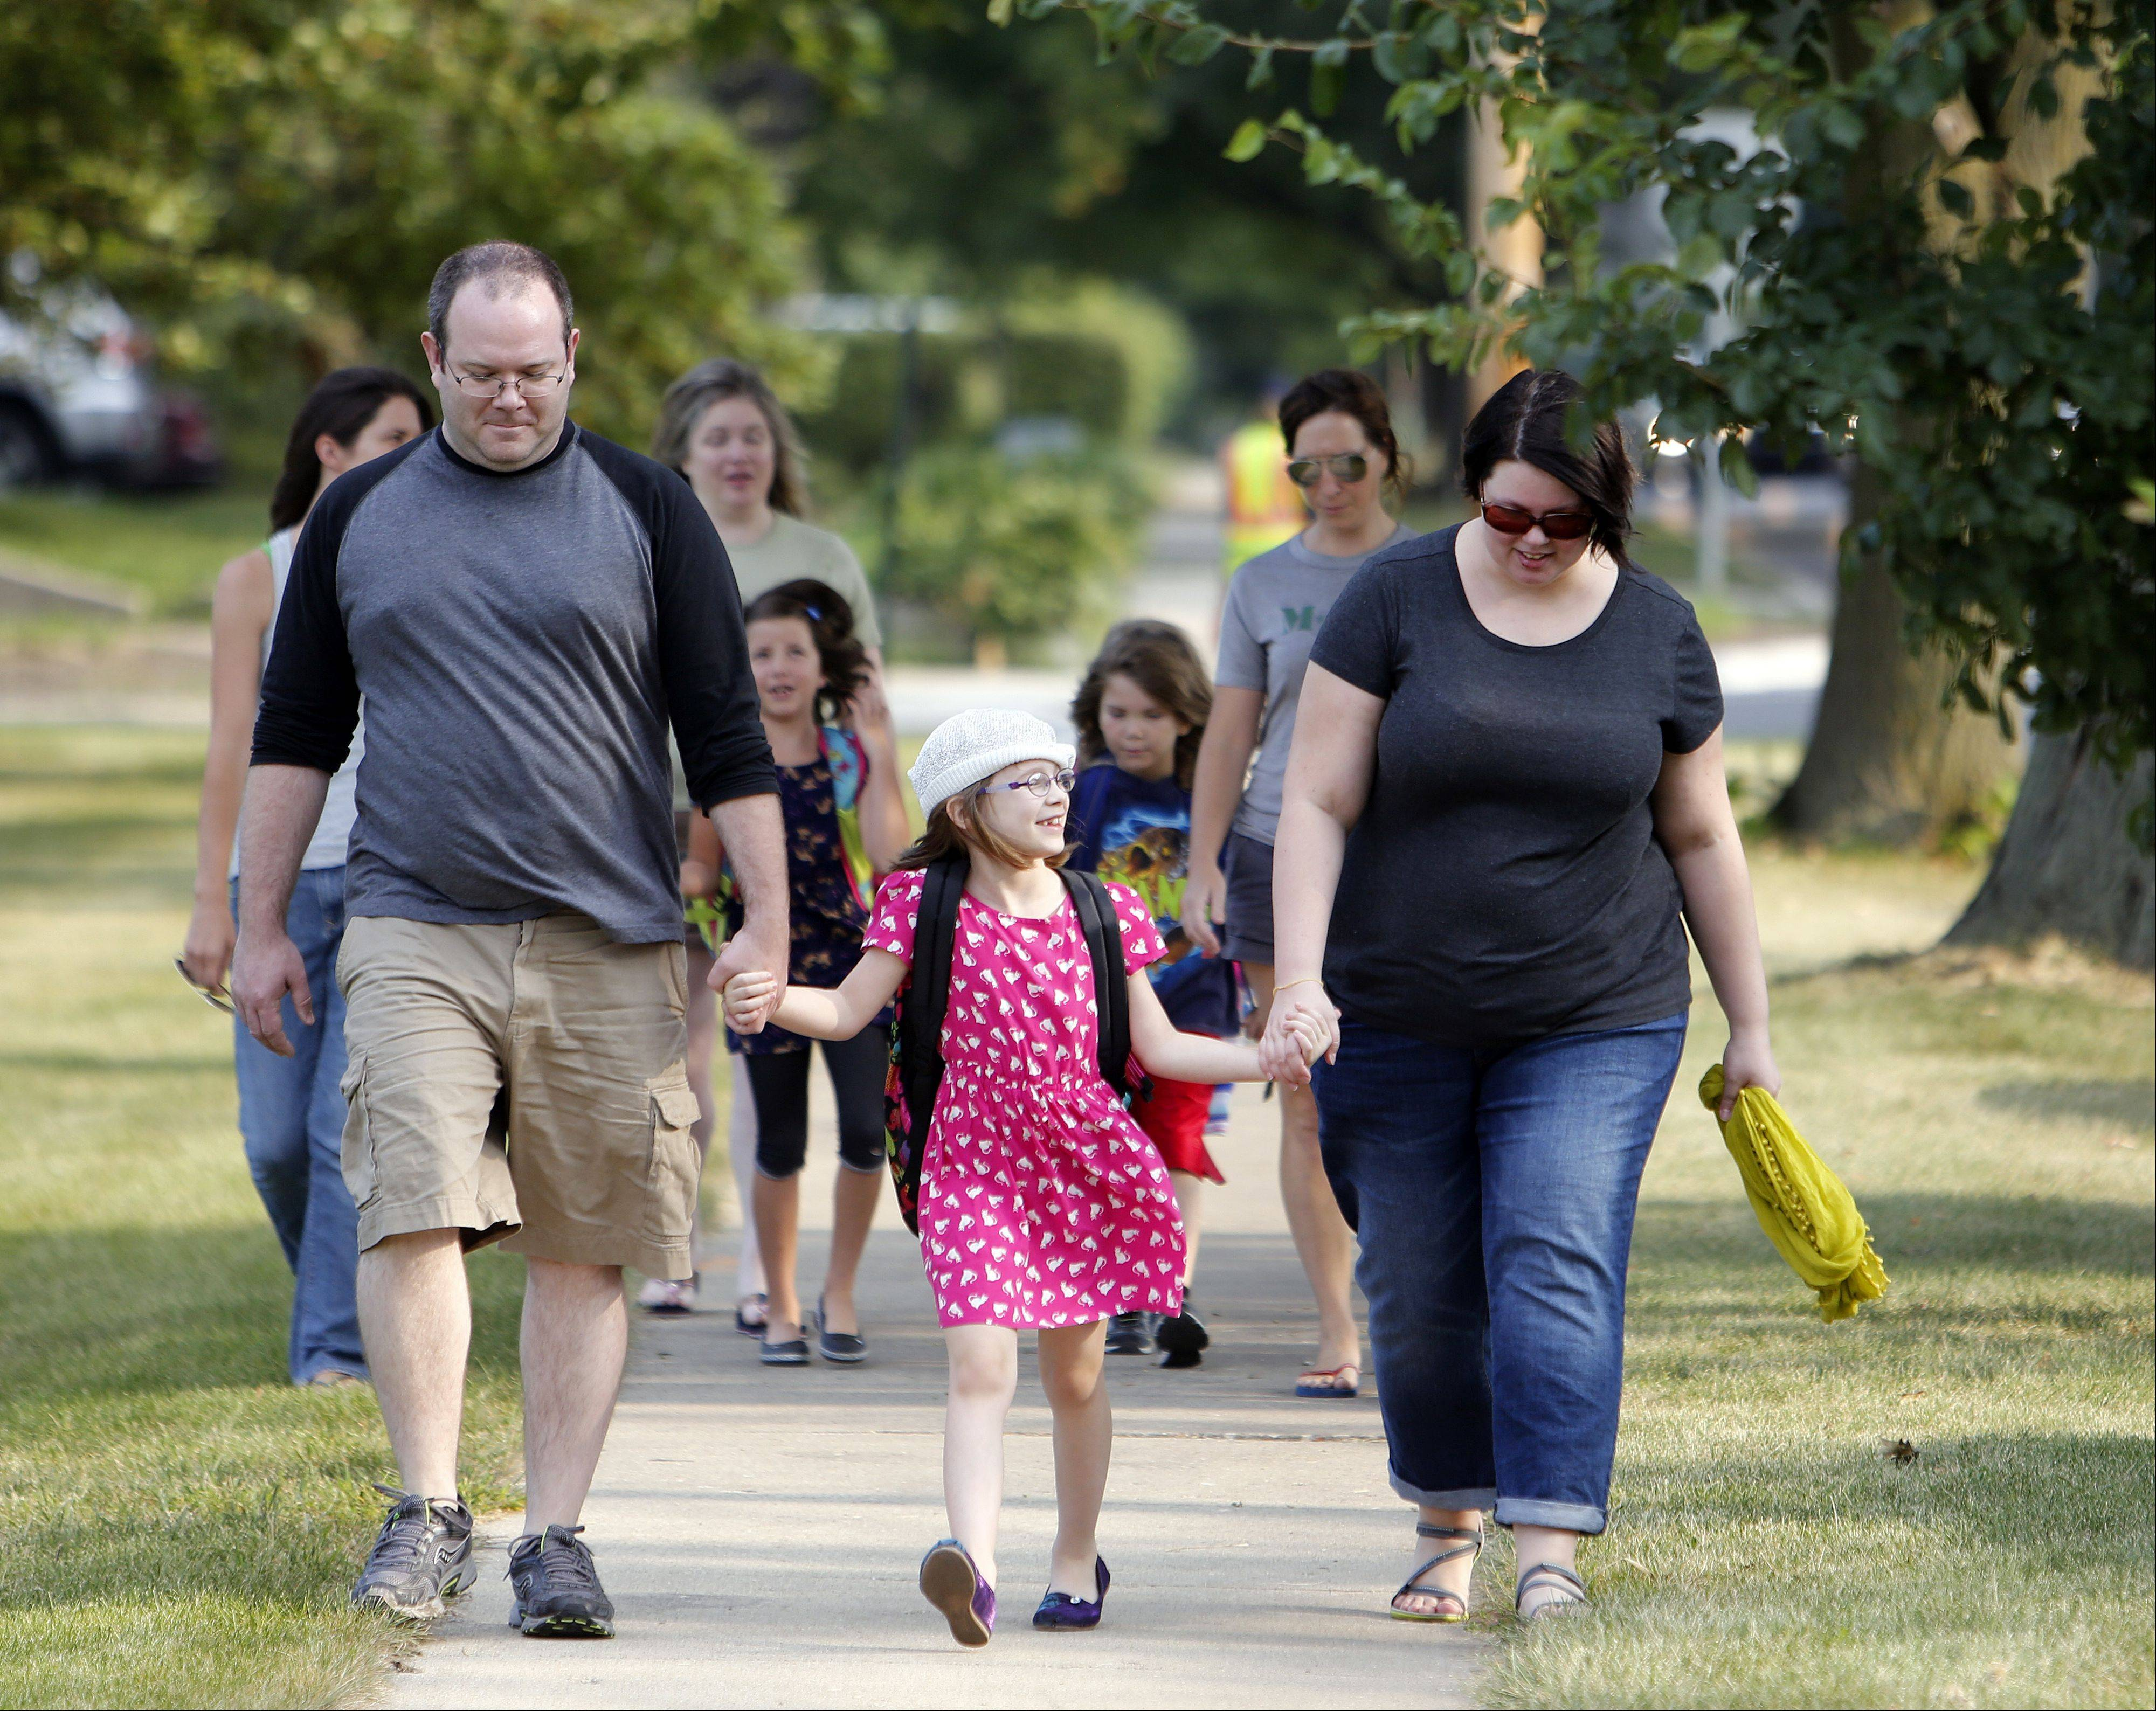 Brian Hill/bhill@dailyherald.com Roger and Allyson Brewer walk hand in hand with their daughter Anya, 7, who was on her way to her first day of second grade at Davis Primary School in St. Charles Wednesday.